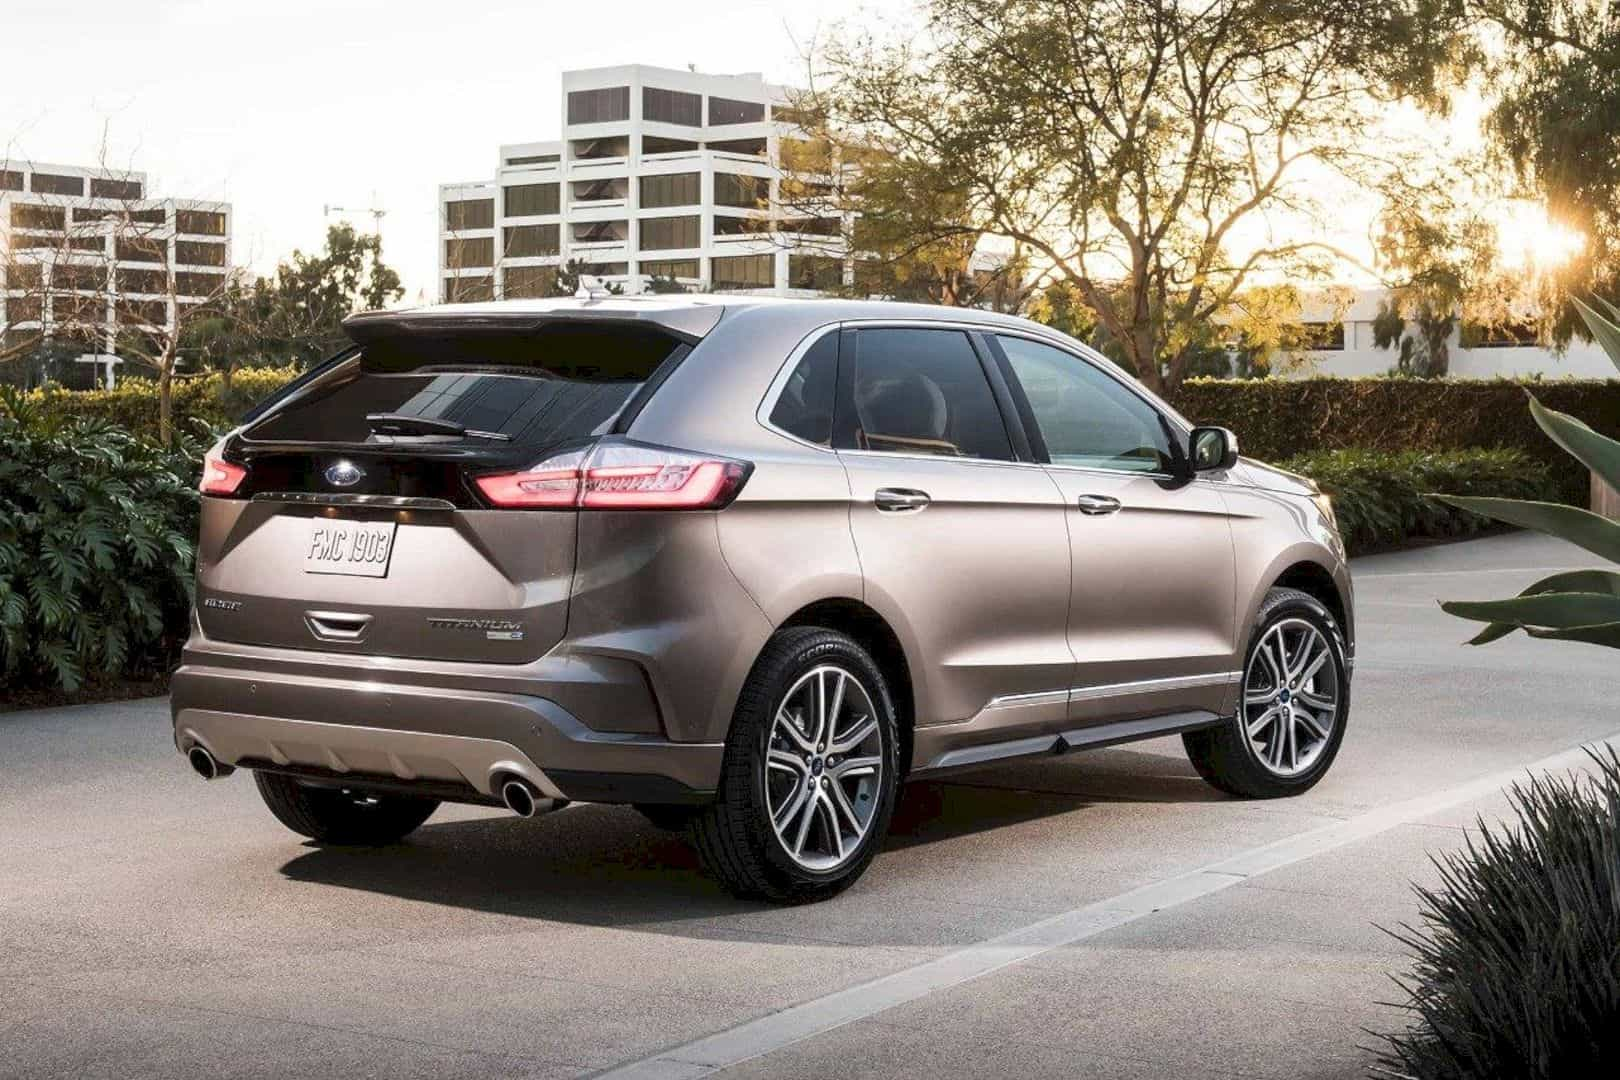 73 All New 2019 Ford Edge New Design Picture